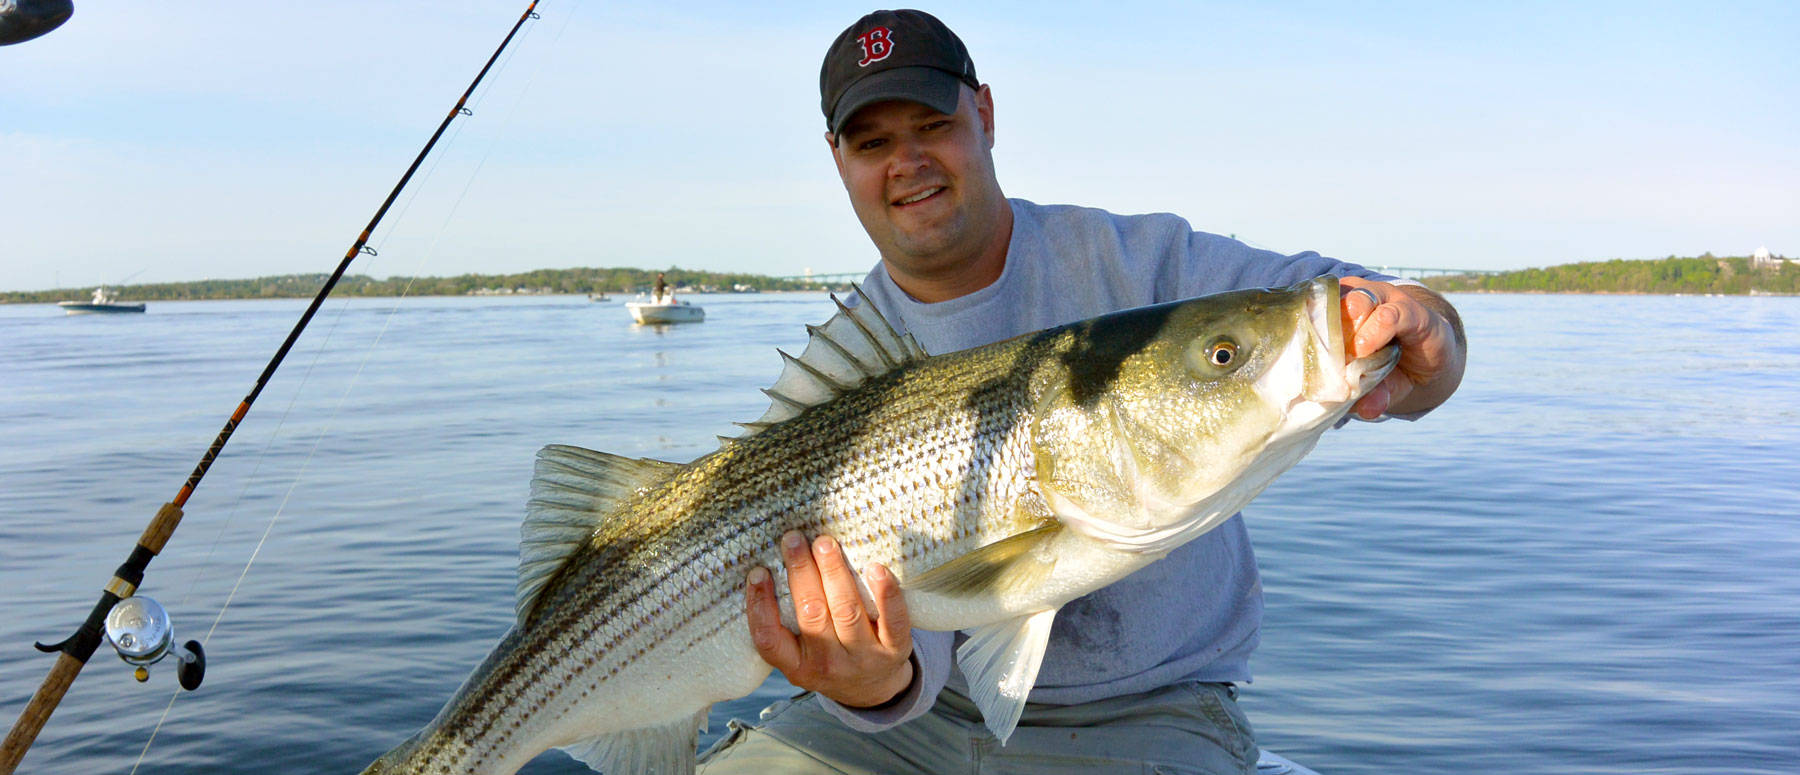 Patterson guide service rhode island light tackle fly for Newport ri fishing charters